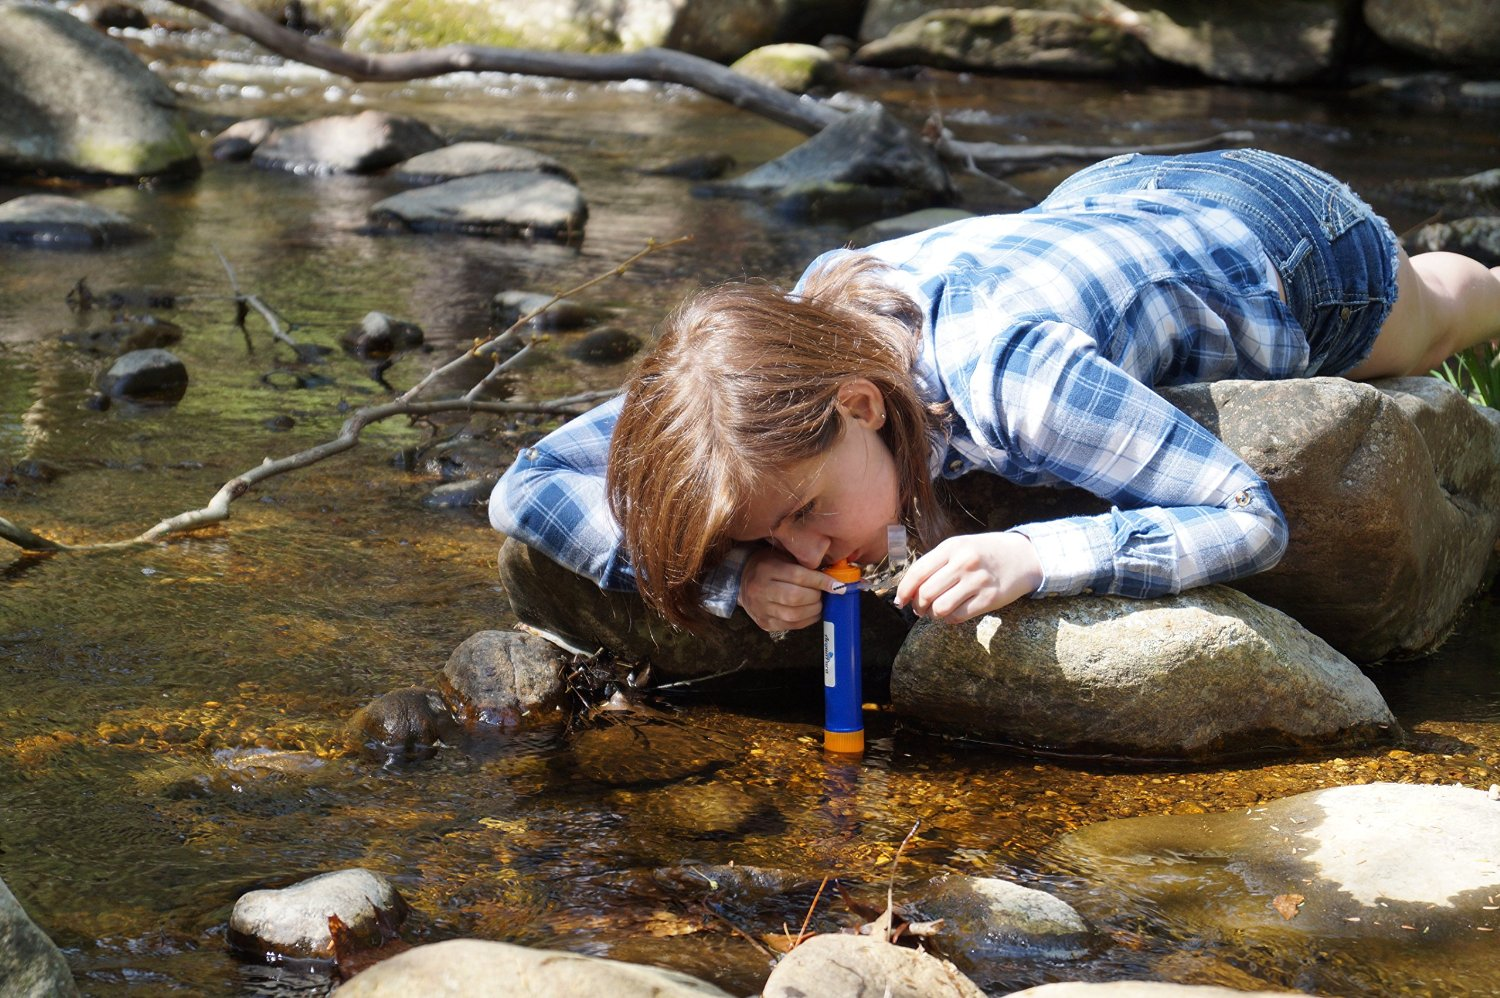 Best Portable Reverse Osmosis Water Filter For Camping